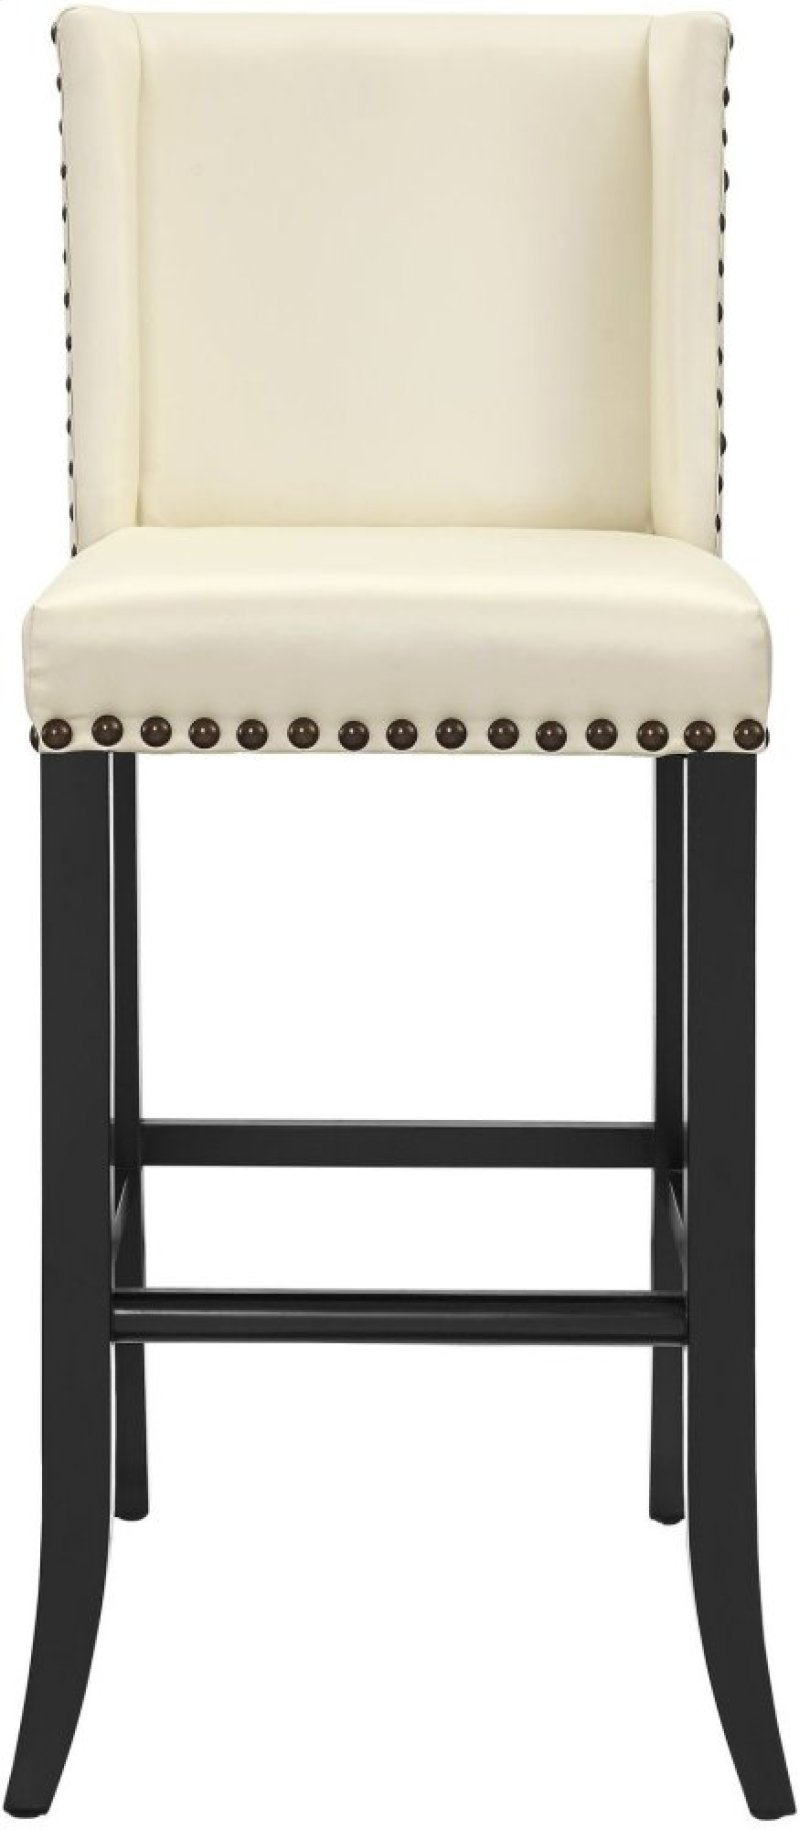 Tovbs15 In By Tov Furniture In Fort Worth Tx Denver Cream Bar Stool